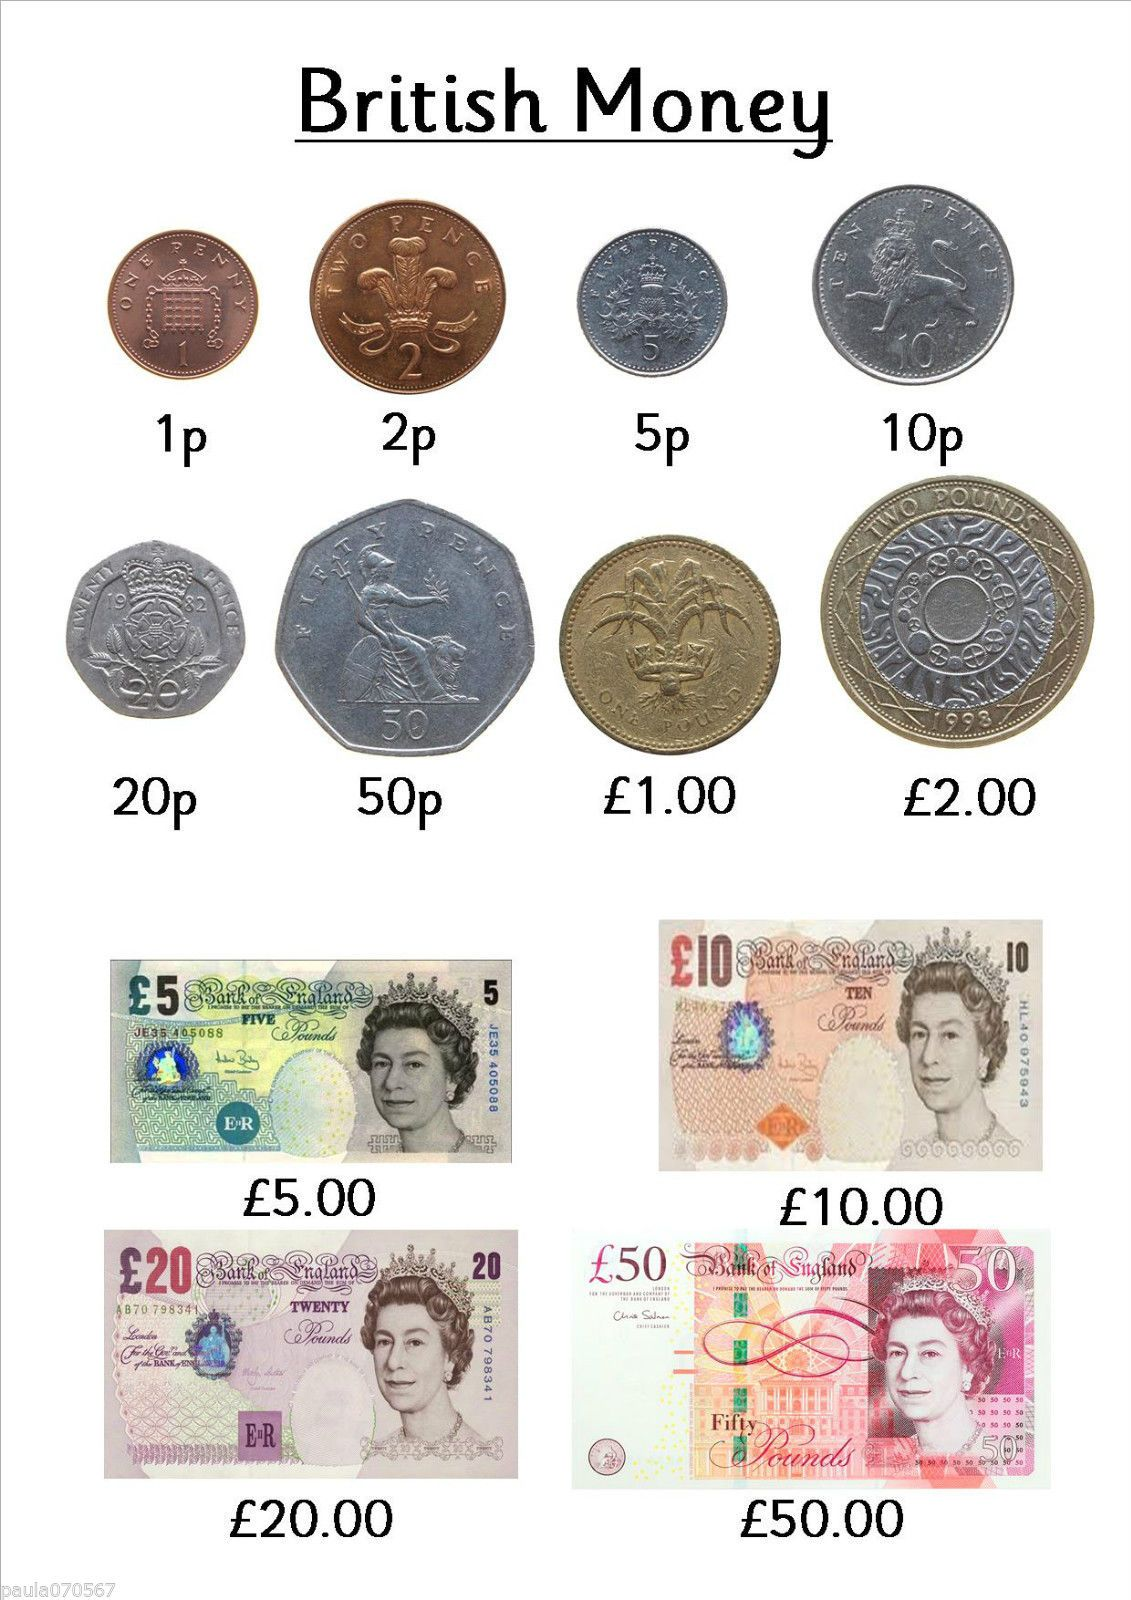 Details About British Money Quick View A4 Poster Full Colour All New Coins And Notes